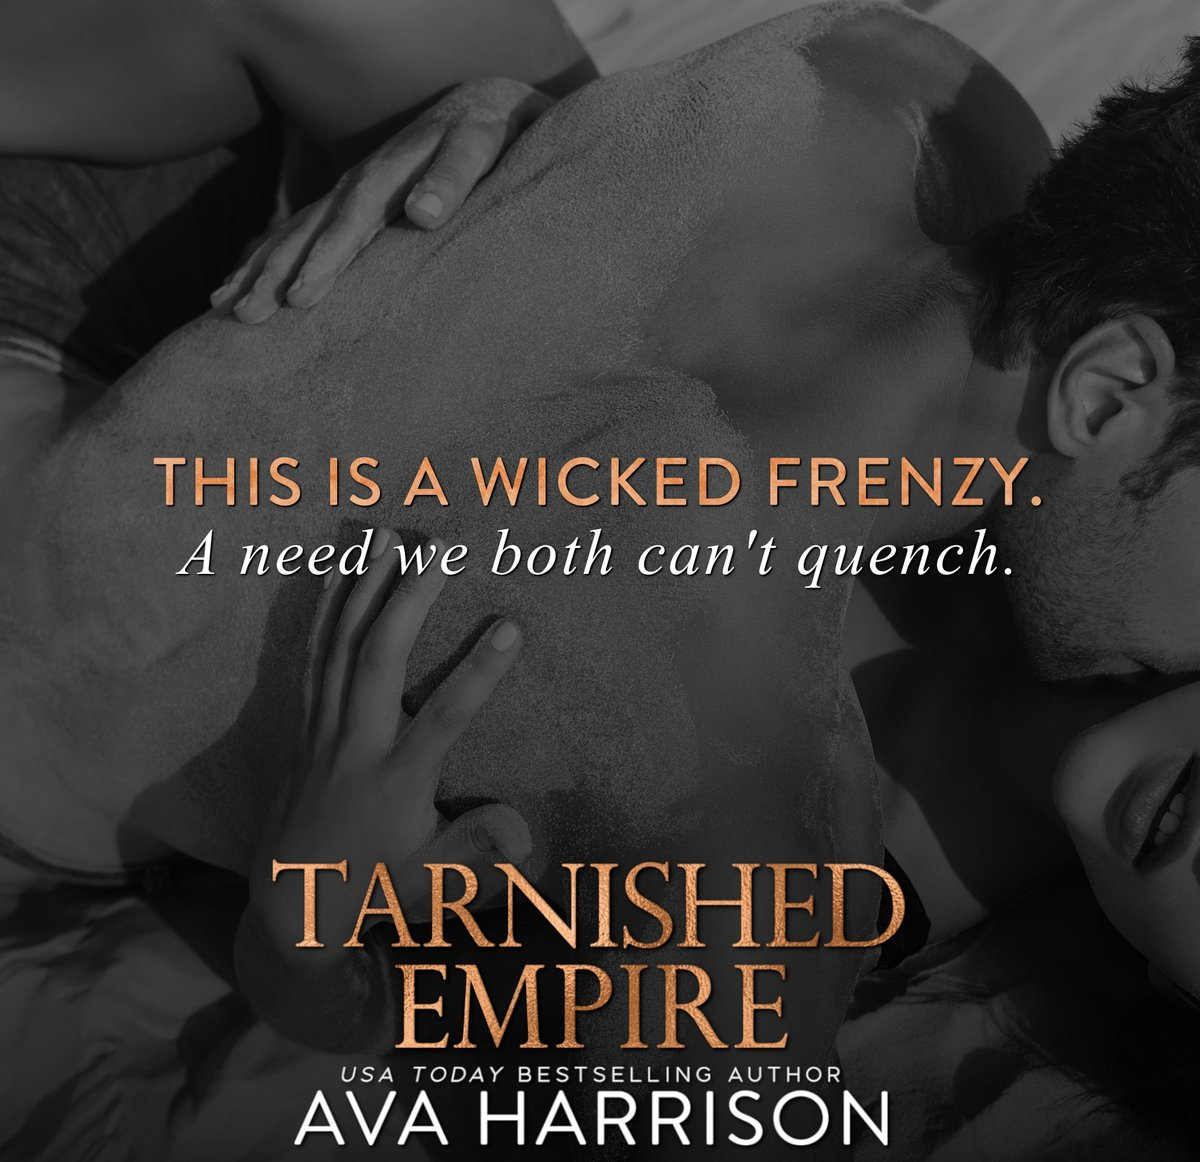 🌟 #TeaserShare 🌟 TARNISHED EMPIRE by Ava Harrison is releasing October 13, 2020!! 🖤🔥 Don't forget to add it to your TBR! Goodreads: https://t.co/NUwmYKULAK - #AvaHarrison #TarnishedEmpire #Teaser #valentineprlm https://t.co/WsPTKMVZBH